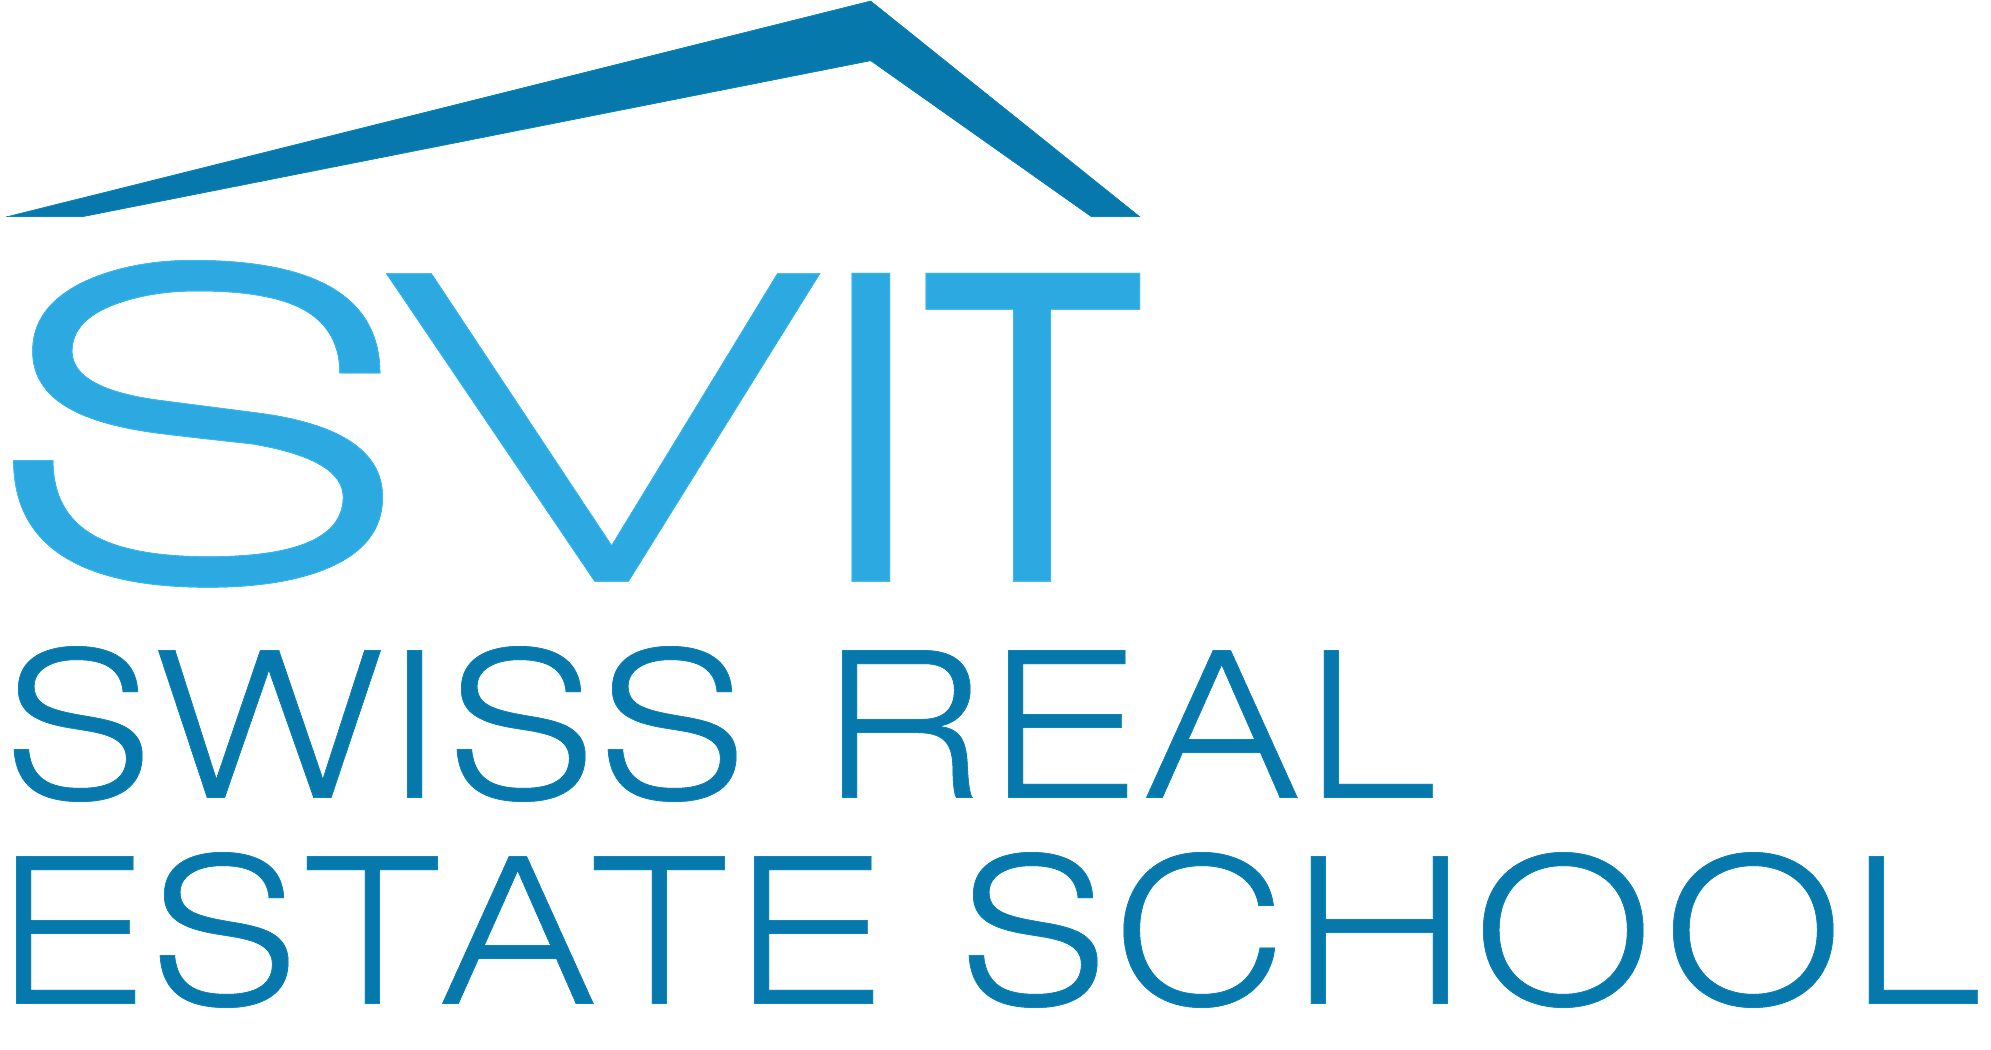 SVIT Swiss Real Estate School AG